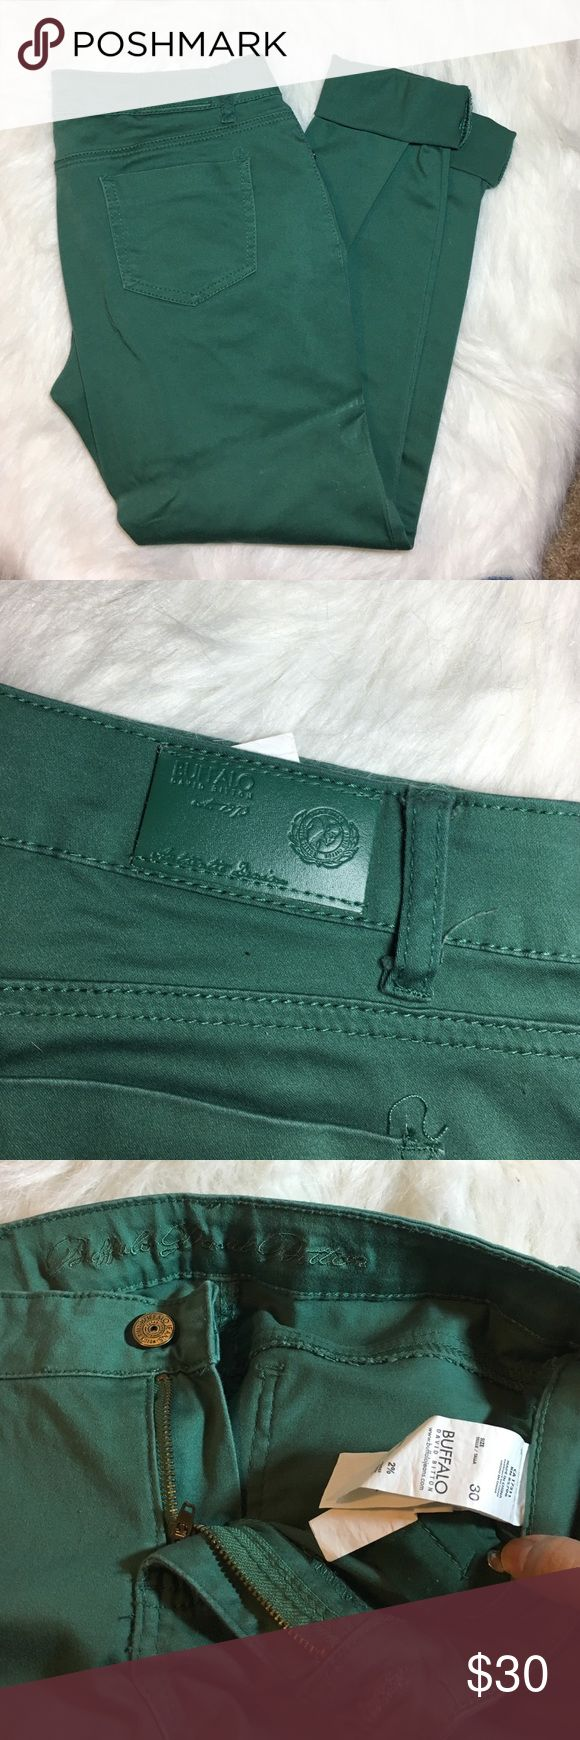 David Bitton skinny jeans Teal/Aqua green skinny jeans by David Bitton used in great condition wore maybe twice they have some stretch to them Buffalo David Bitton Jeans Skinny